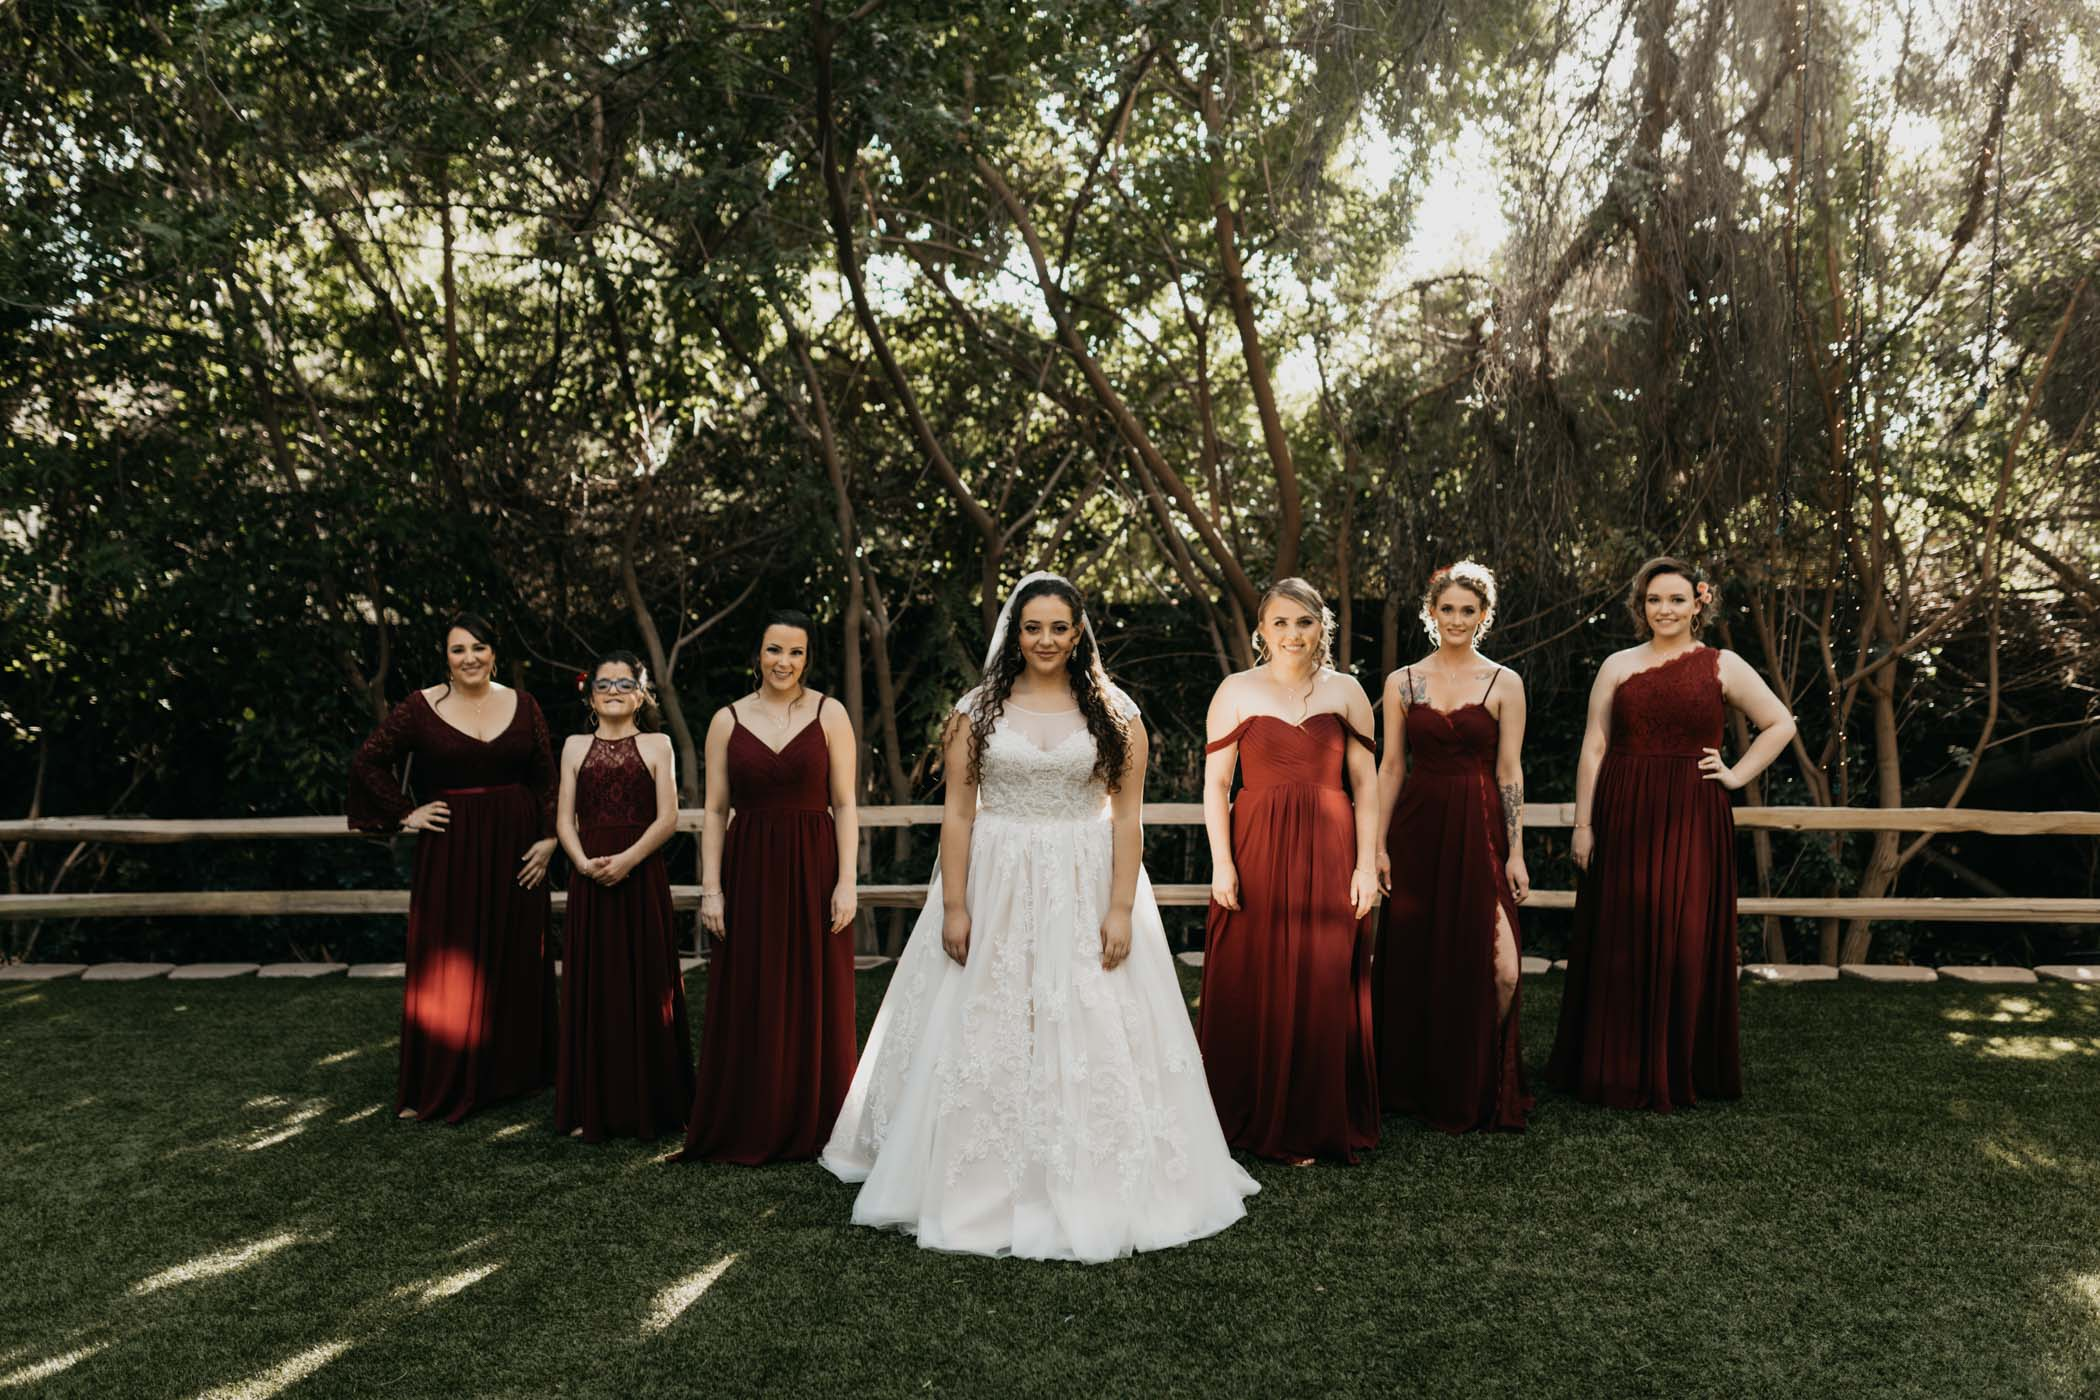 Bridesmaids and bride take moody photo together at Green gables wedding estate